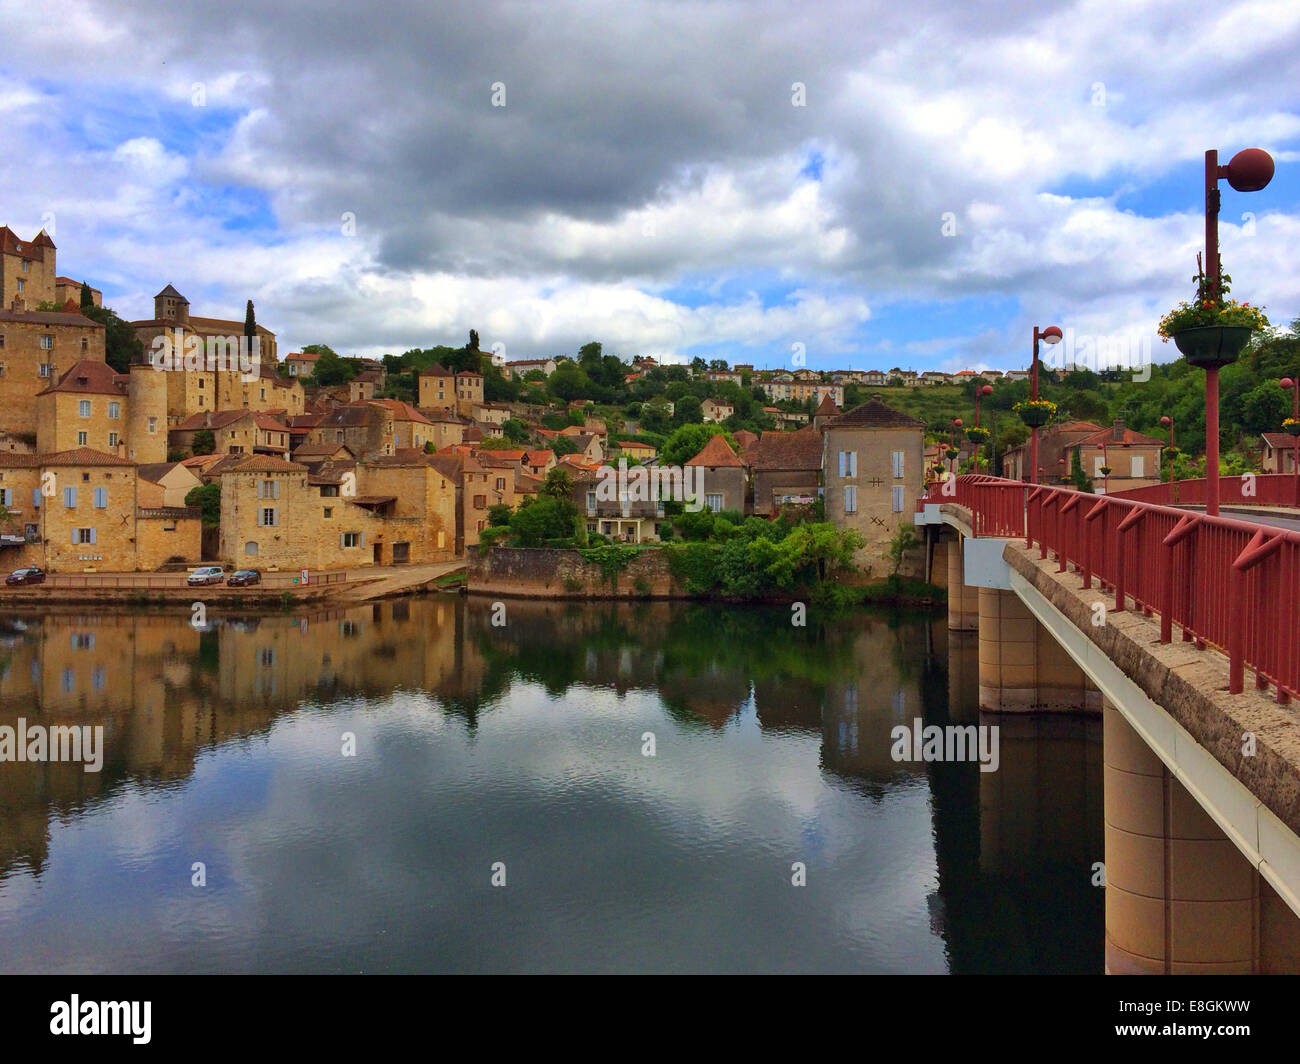 France, Puy L'Eveque, Picture of town - Stock Image